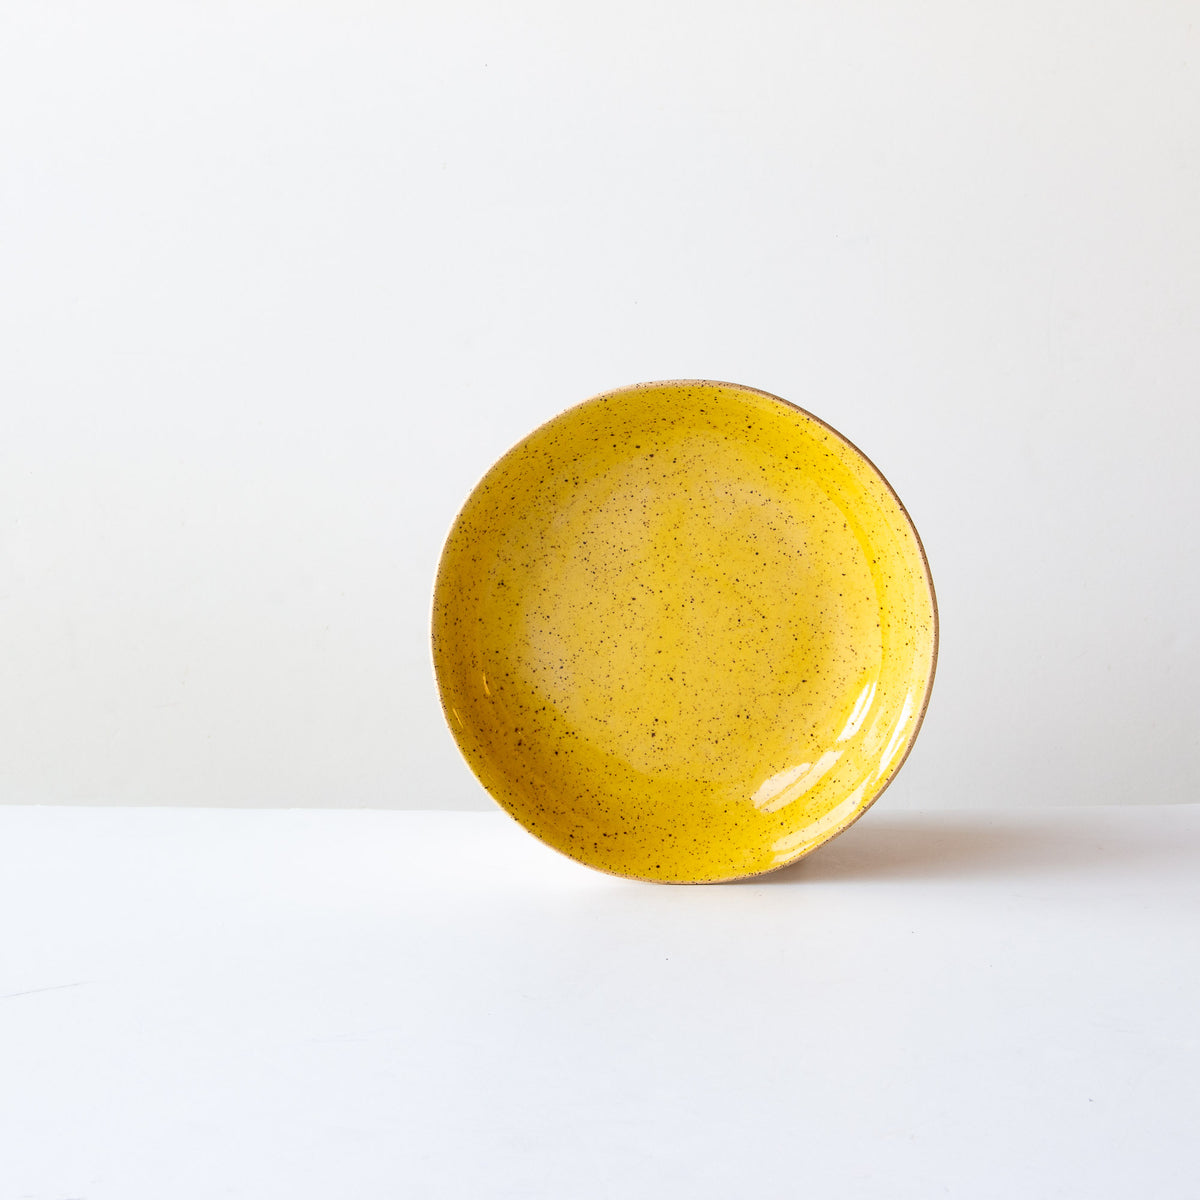 Small Pasta Bowl - Handmade in Speckled Yellow Glazed Stoneware - Sold by Chic & Basta